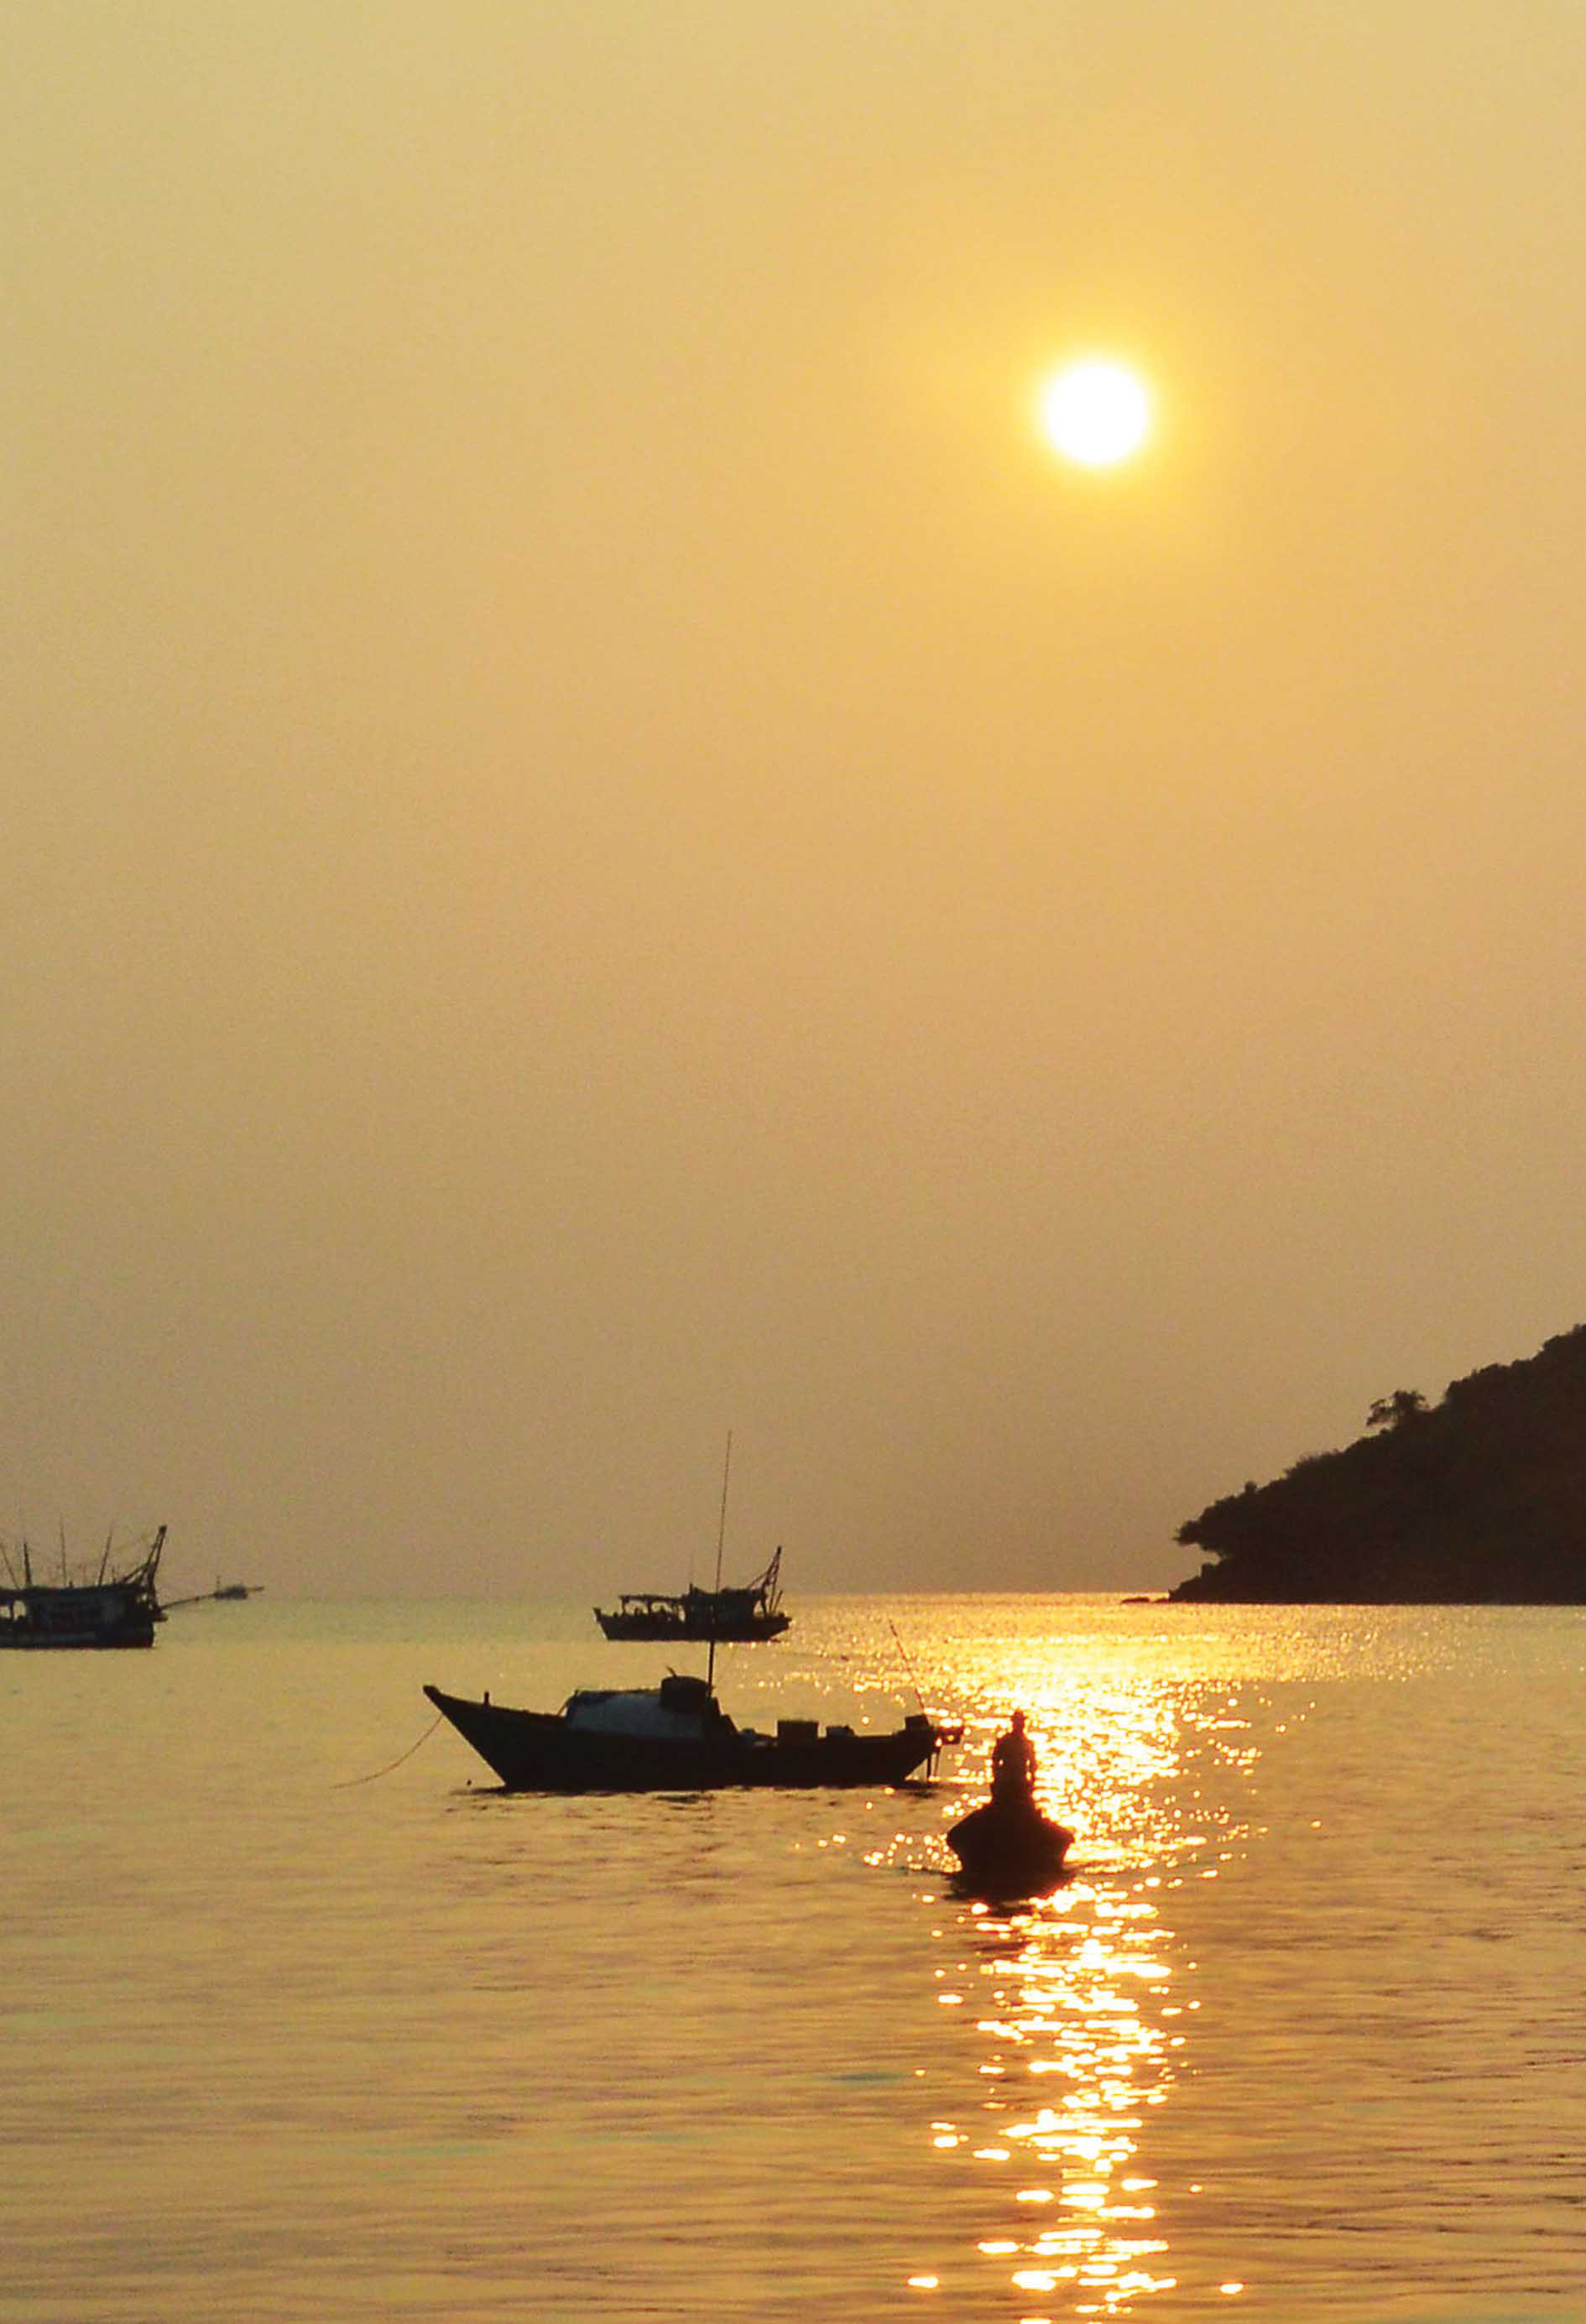 A sunset as seen from Tho Chau Islands off Kien Giang Province, Vietnam.